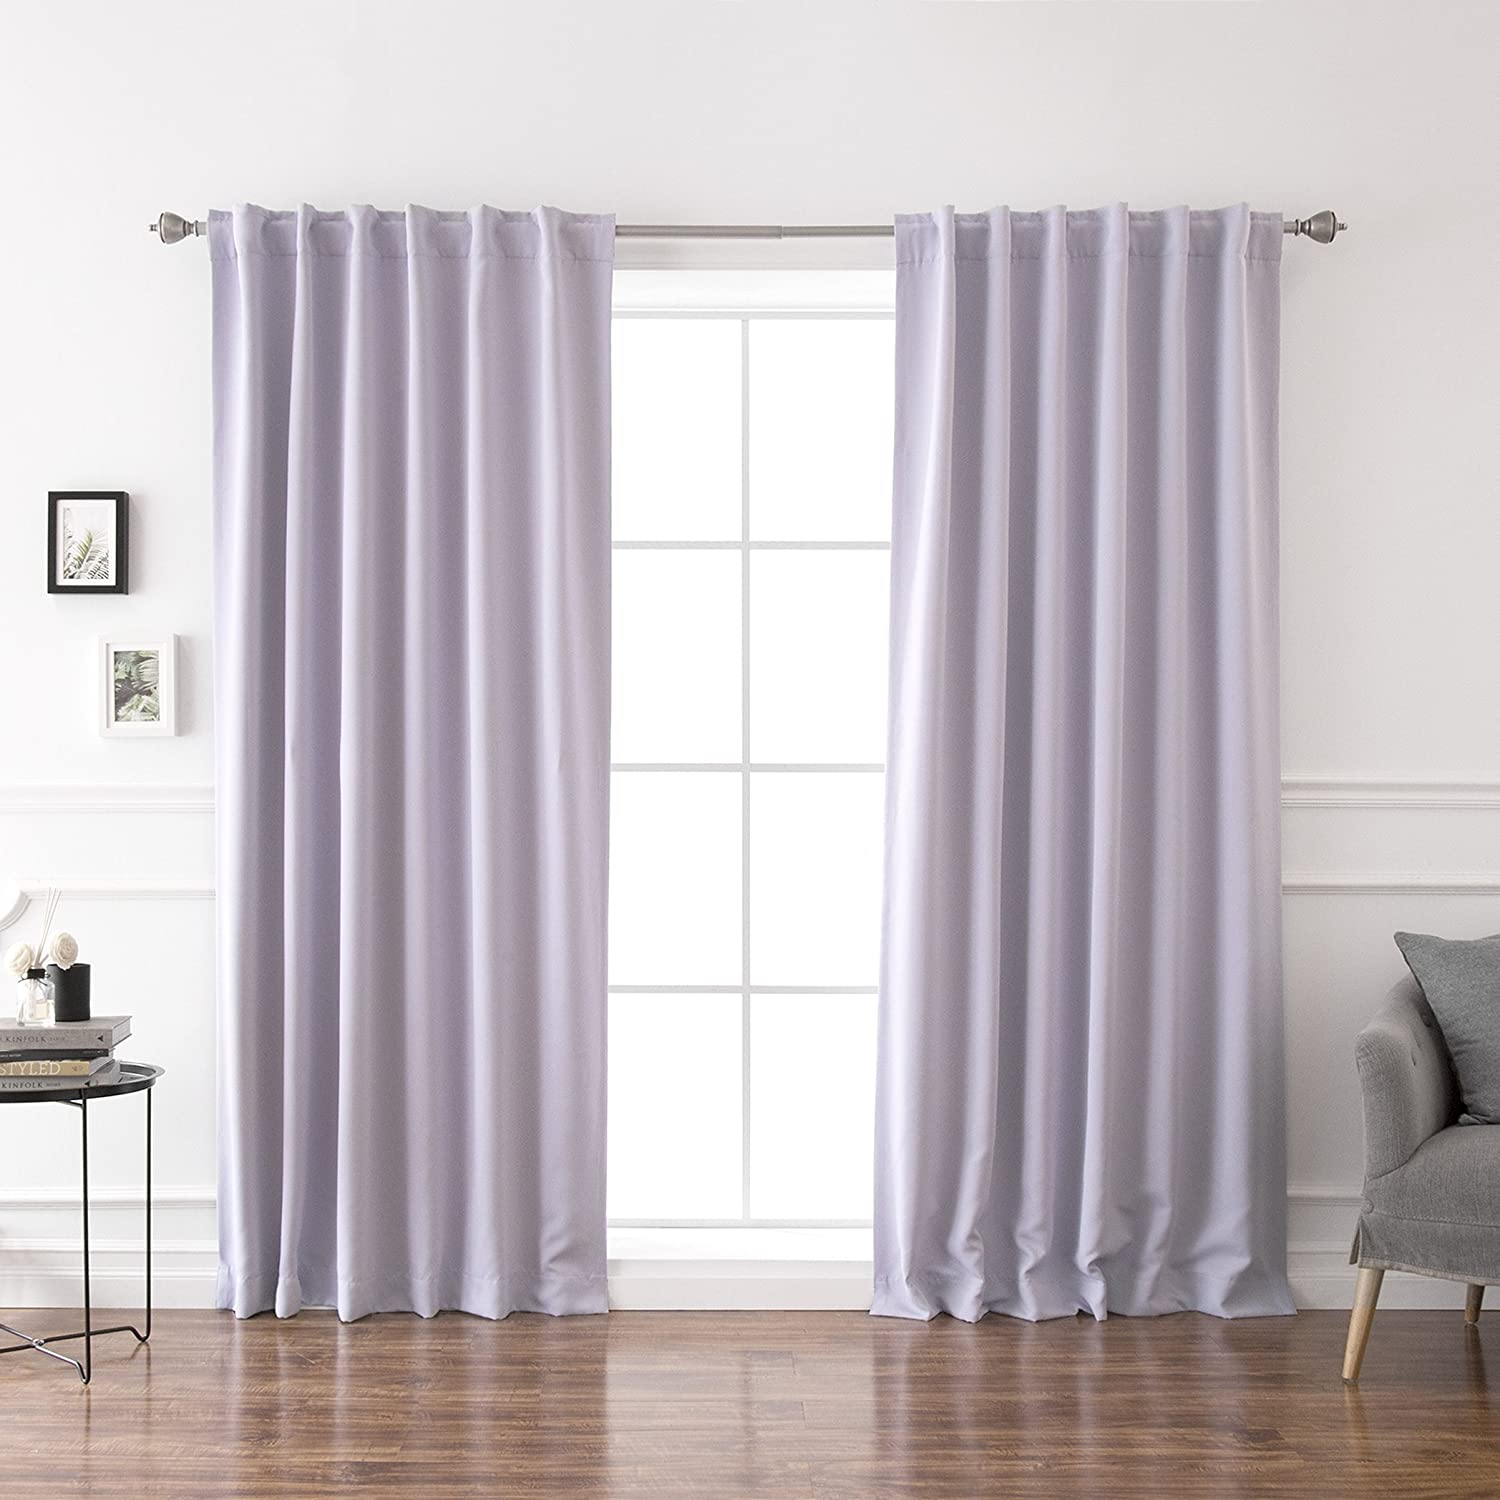 "Best Home Fashion Thermal Insulated Blackout Curtains - Back Tab/Rod Pocket - 52"" W x 84"" L - Lilac (Set of 2 Panels)"